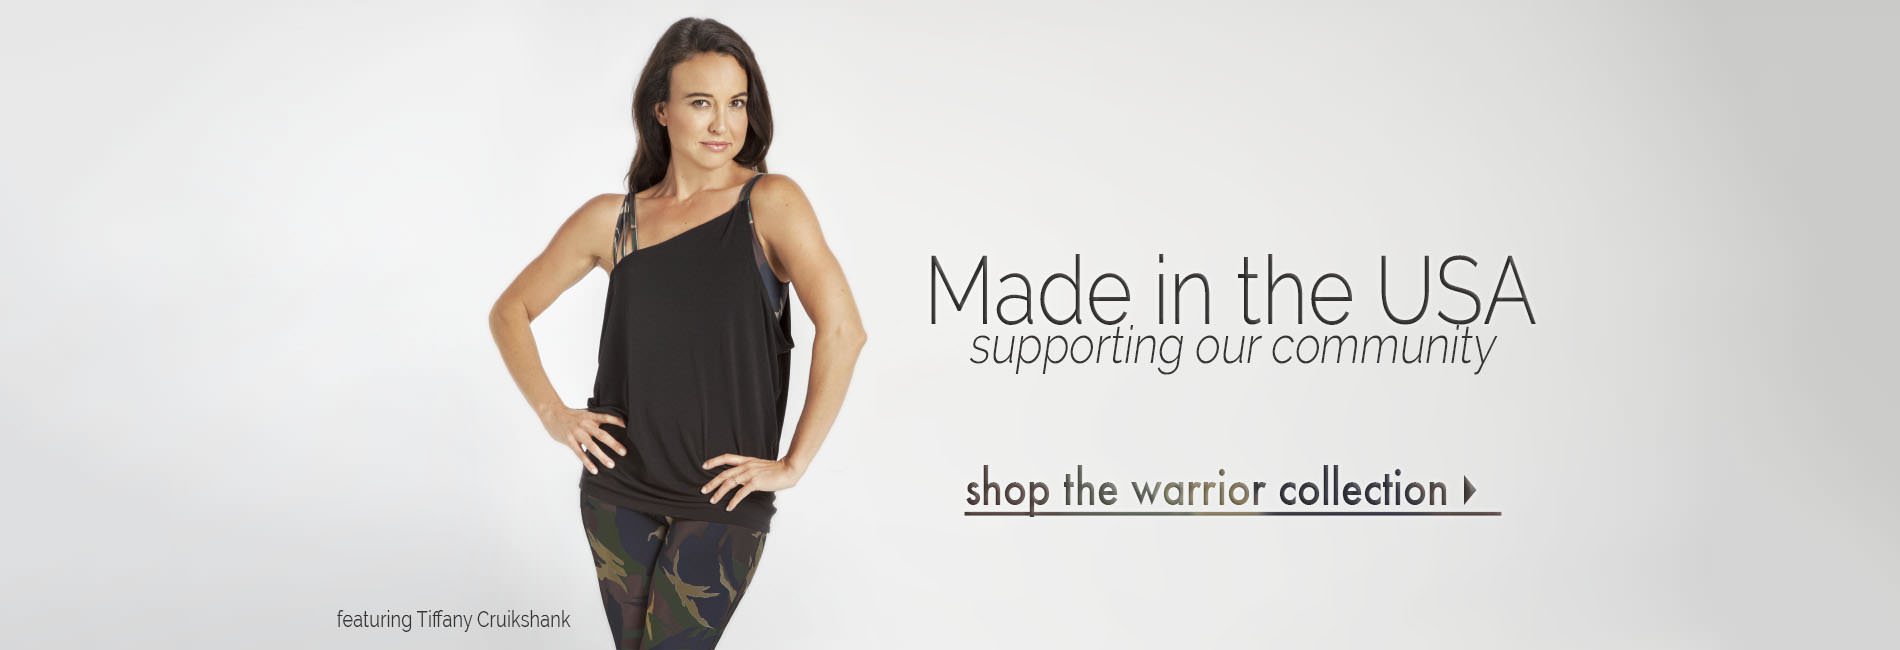 Yoga Clothes Made in the USA